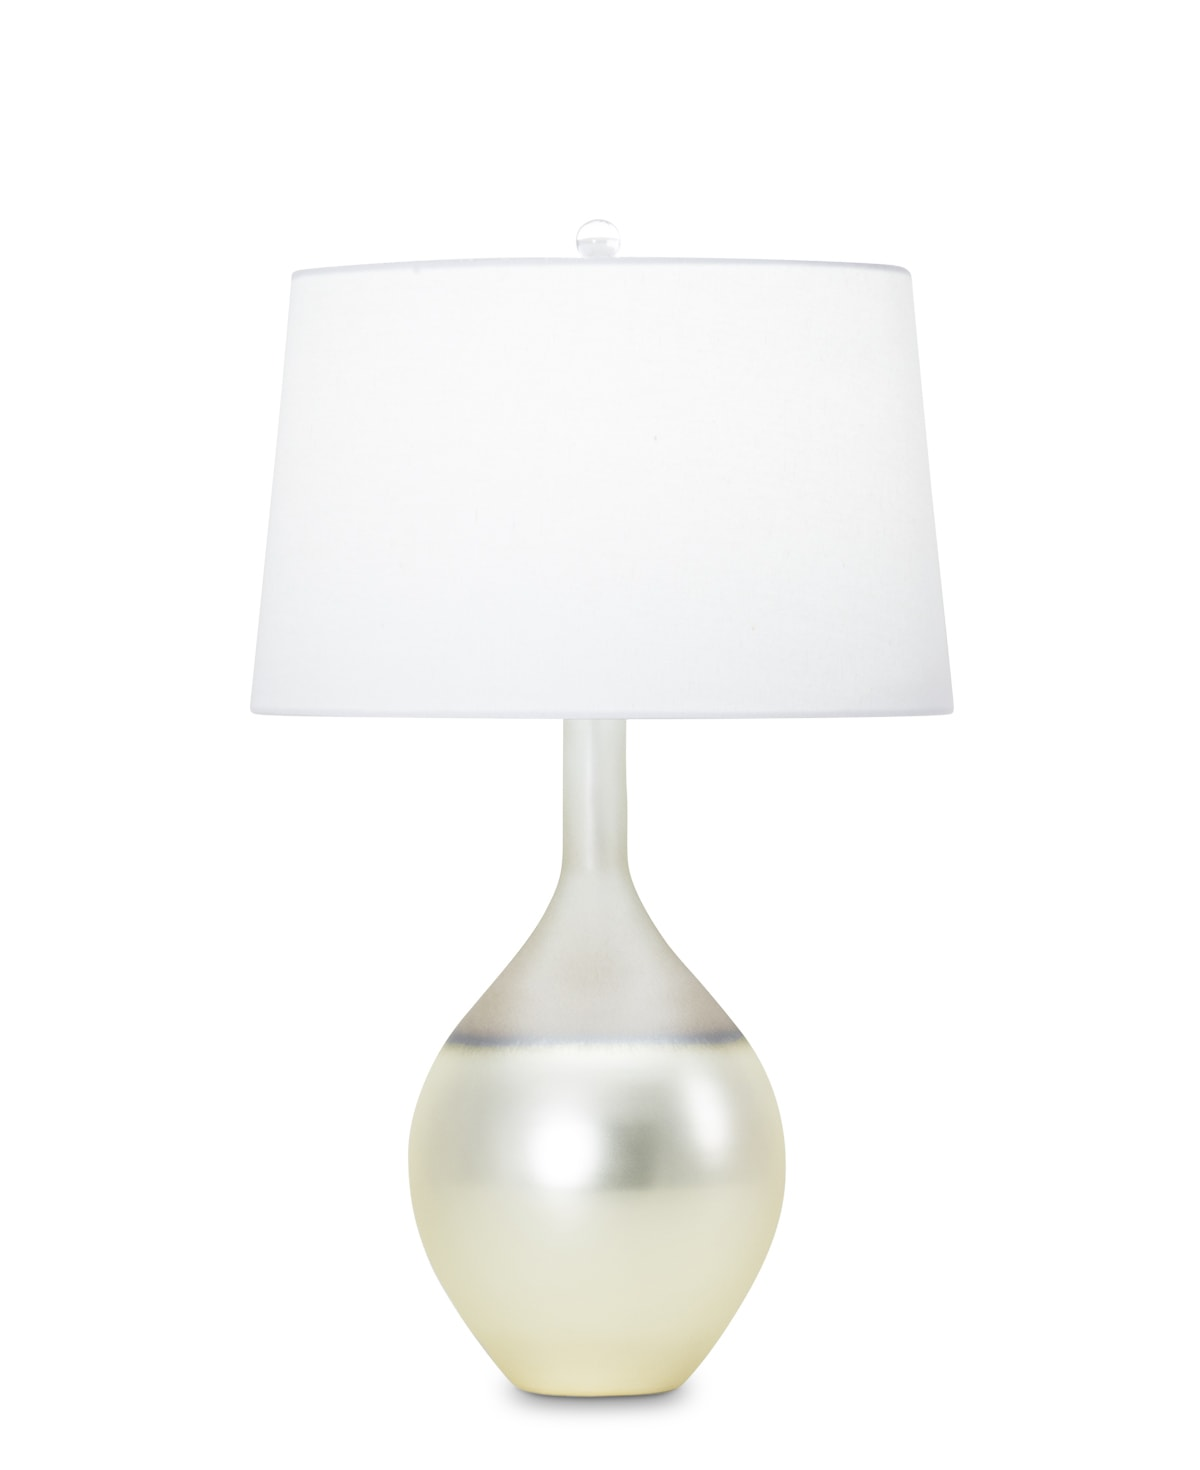 FlowDecor Barcelona Table Lamp in mouth-blown glass with pearlescent graduated finish and off-white cotton tapered drum shade (# 3370)